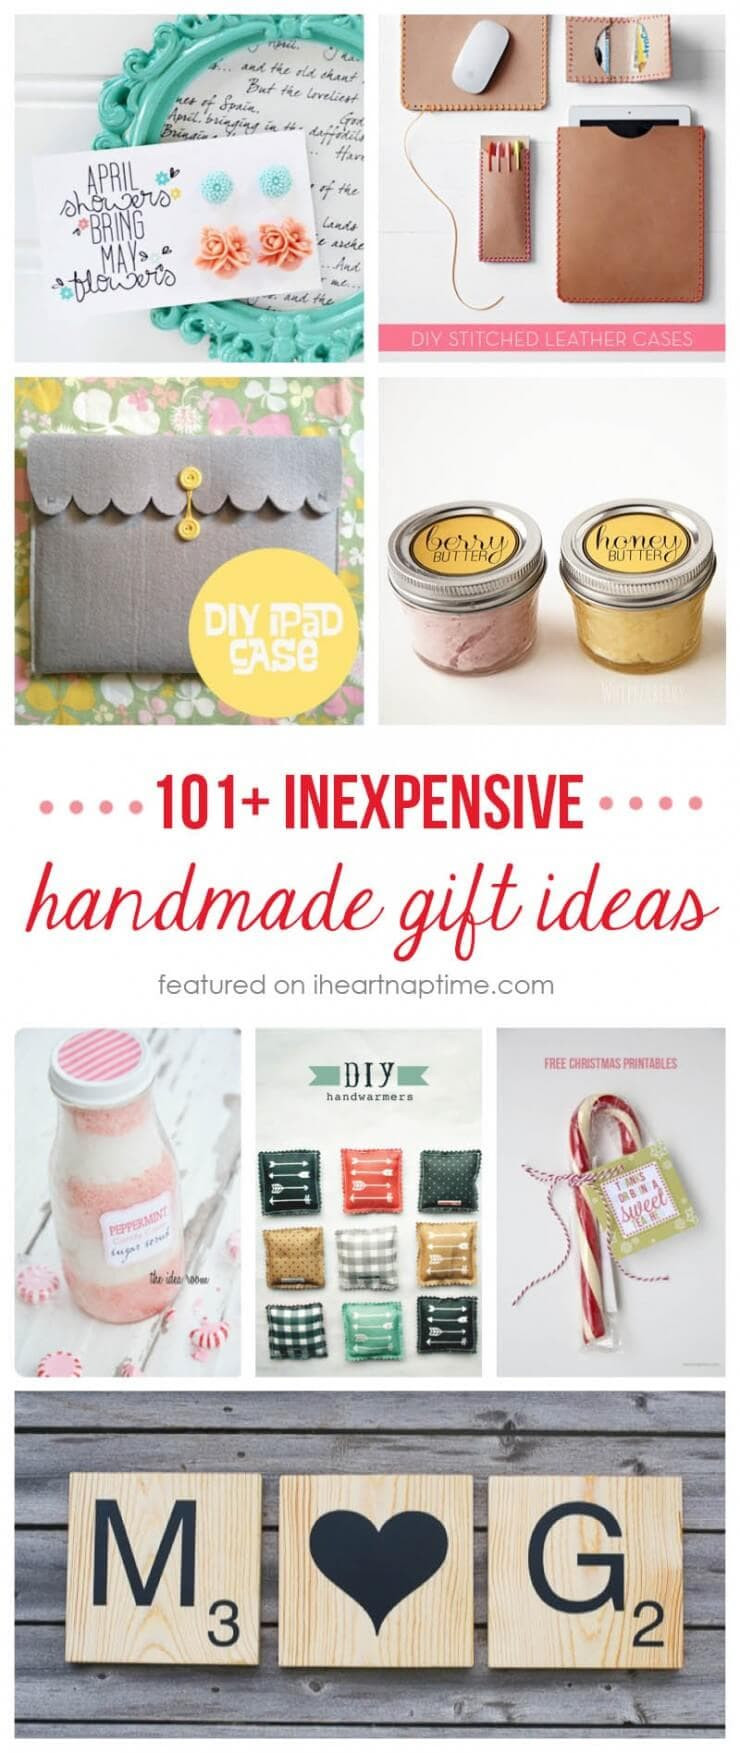 Inexpensive Christmas Gift Ideas  50 homemade t ideas to make for under $5 I Heart Nap Time